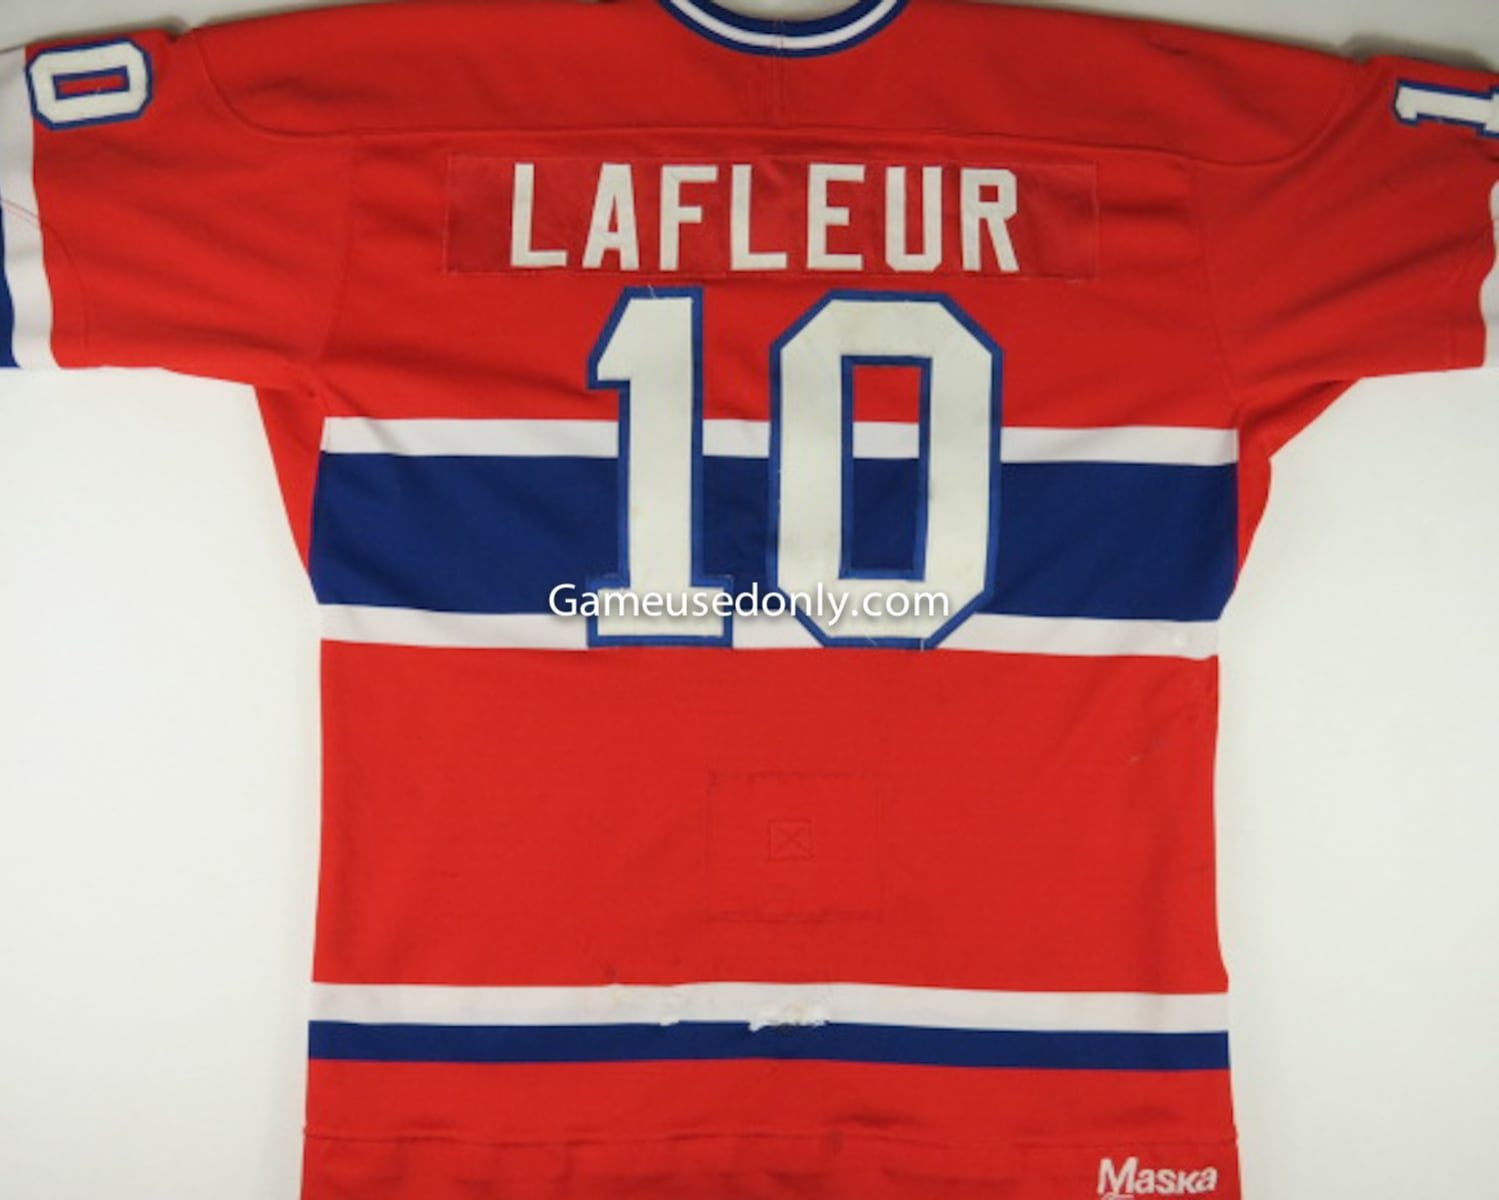 Guy-Lafleur-Game-Used-Jersey-Maska